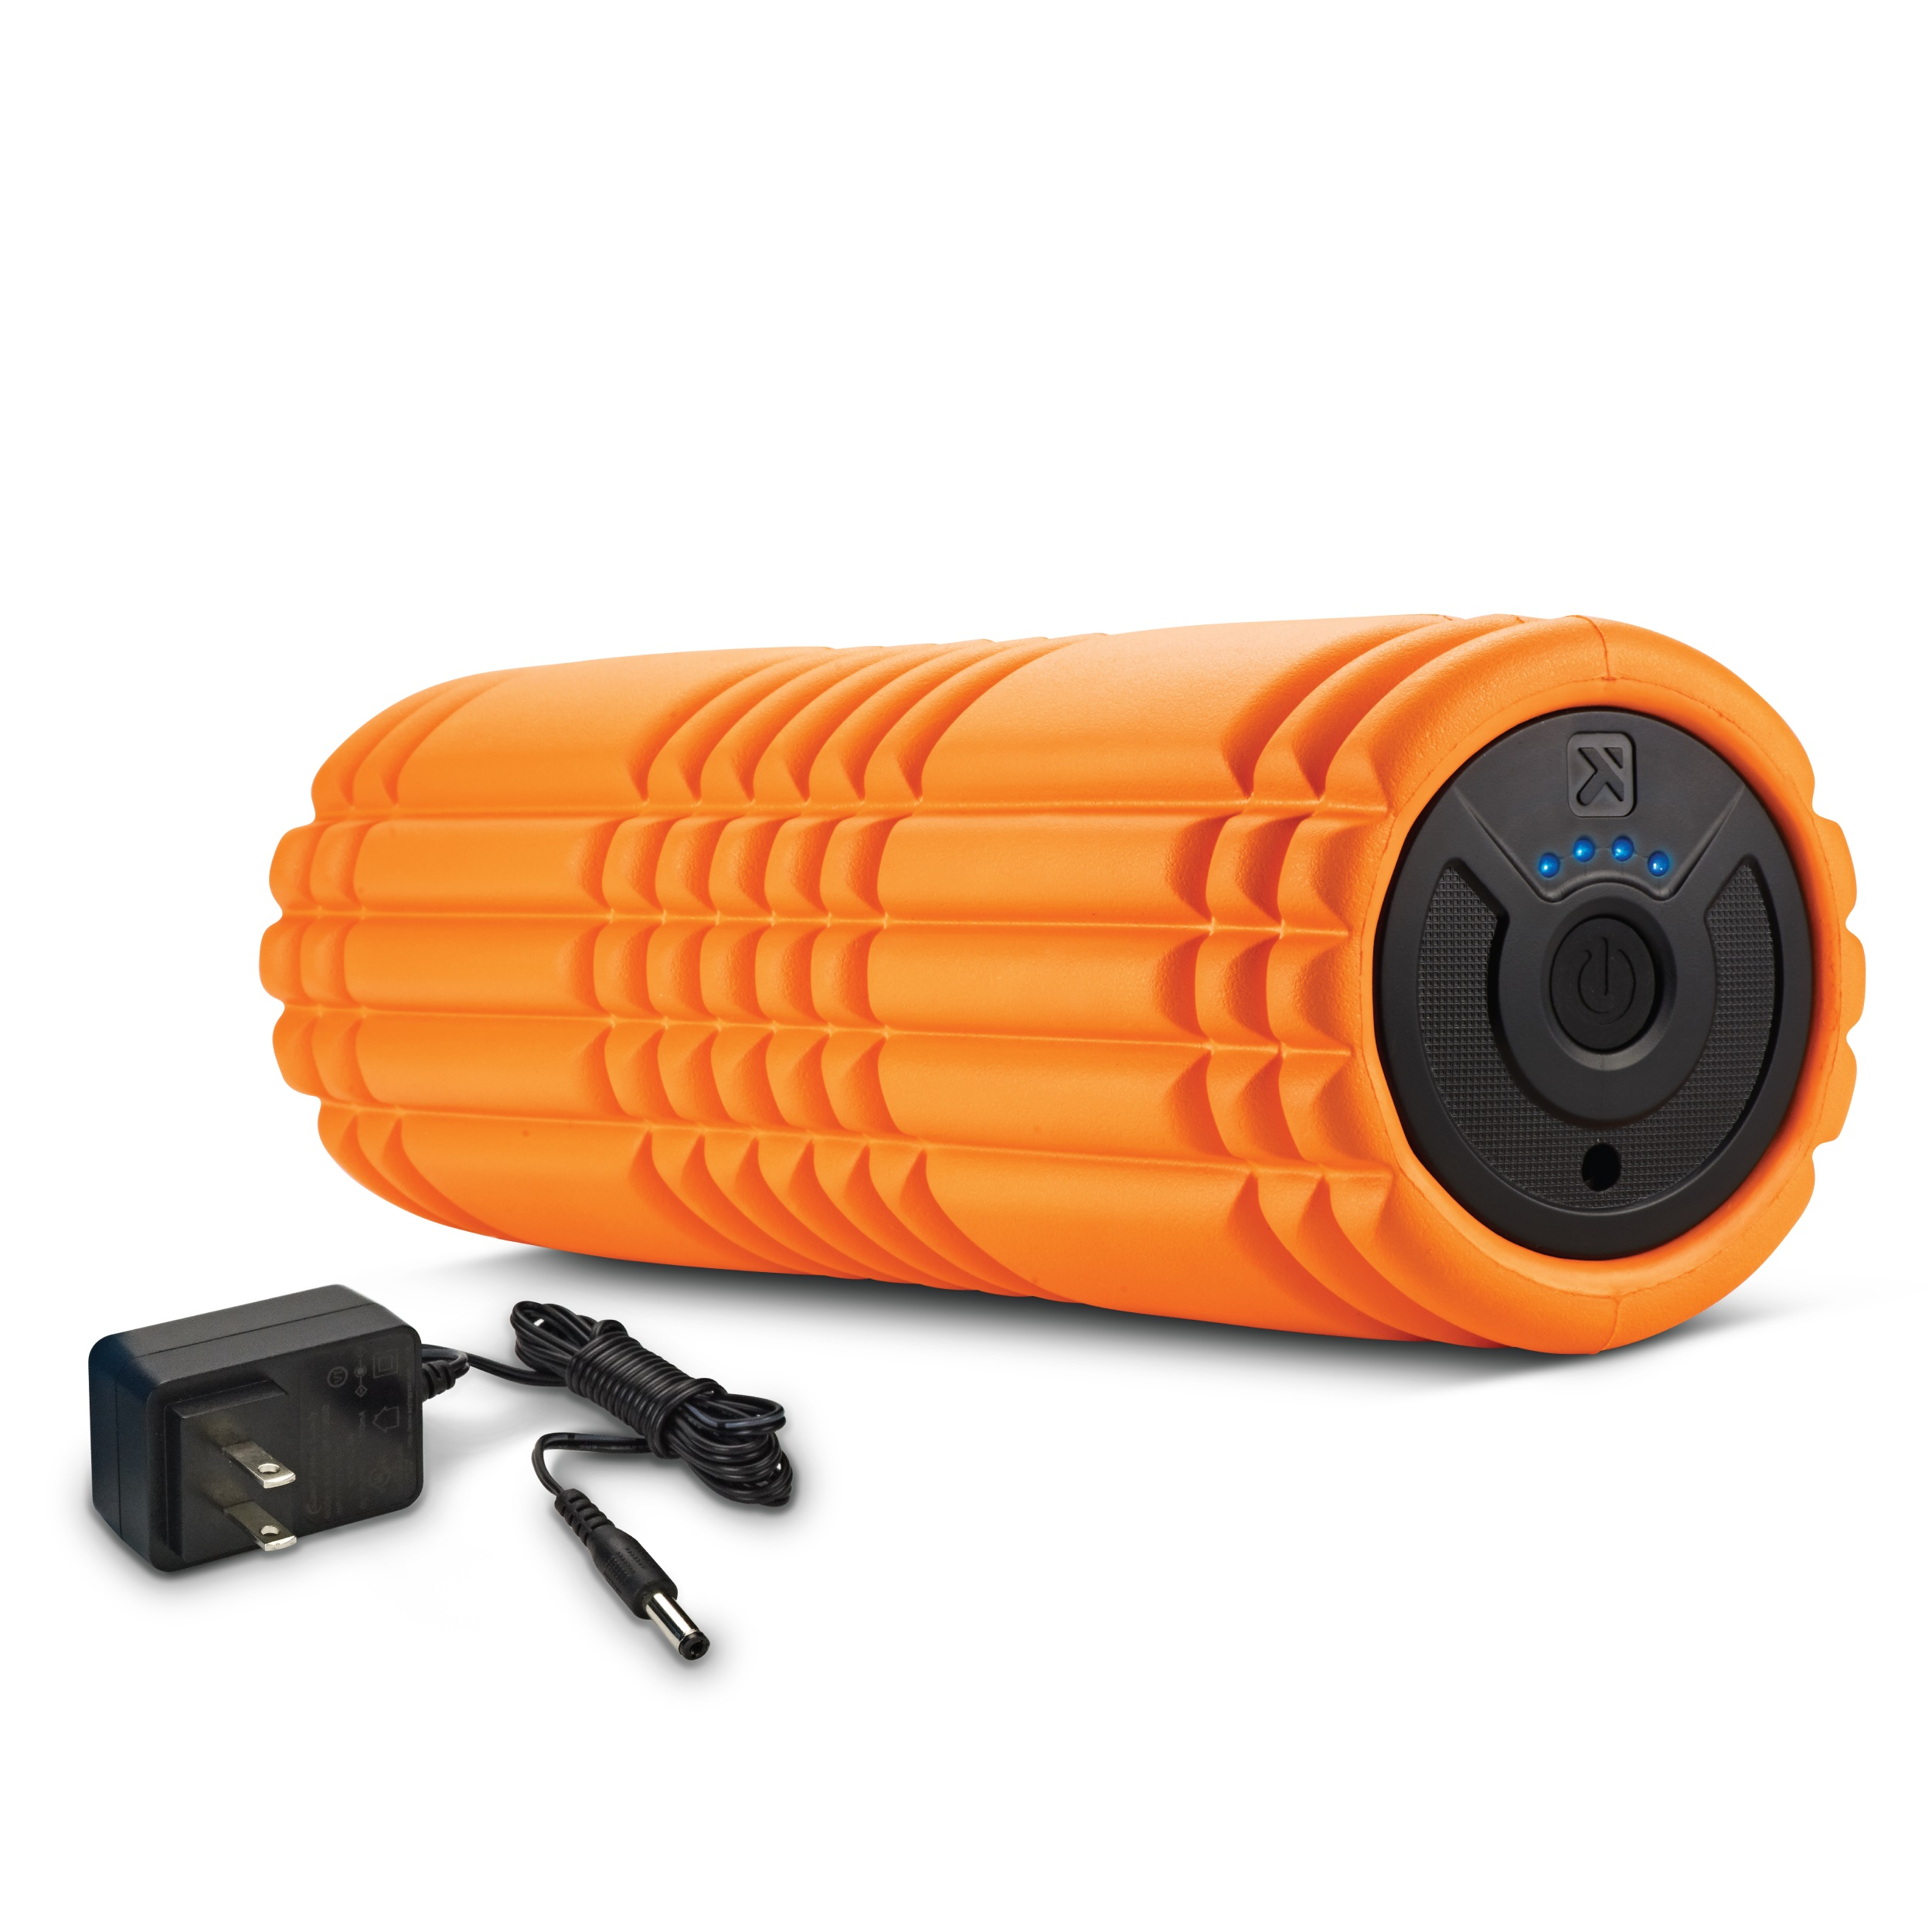 Trigger Point Performance GRID VIBE Plus Vibrating Foam Roller